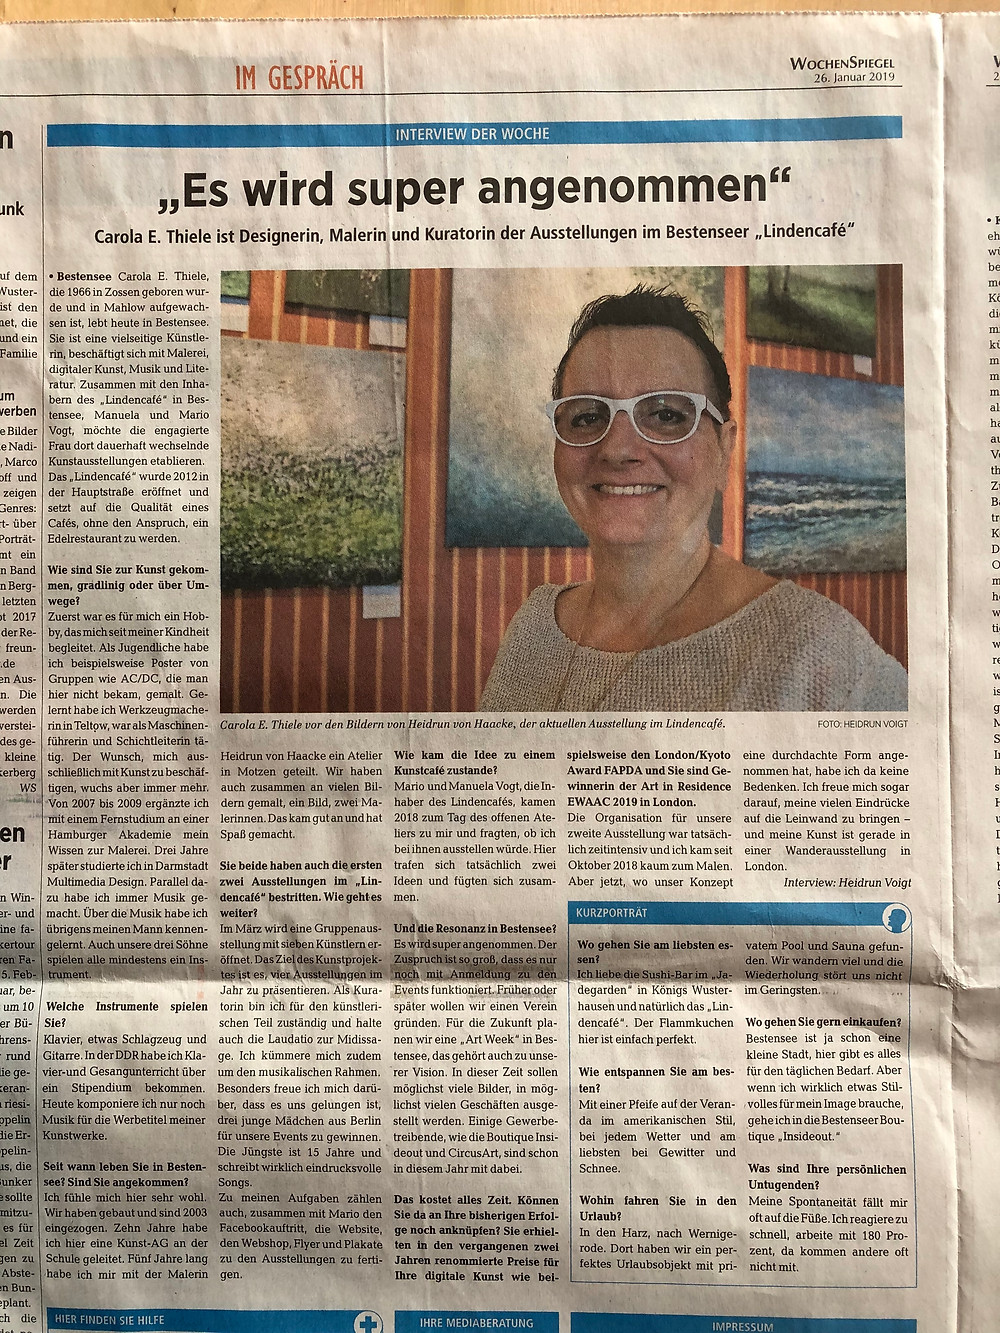 Heidrun Voigt Interview